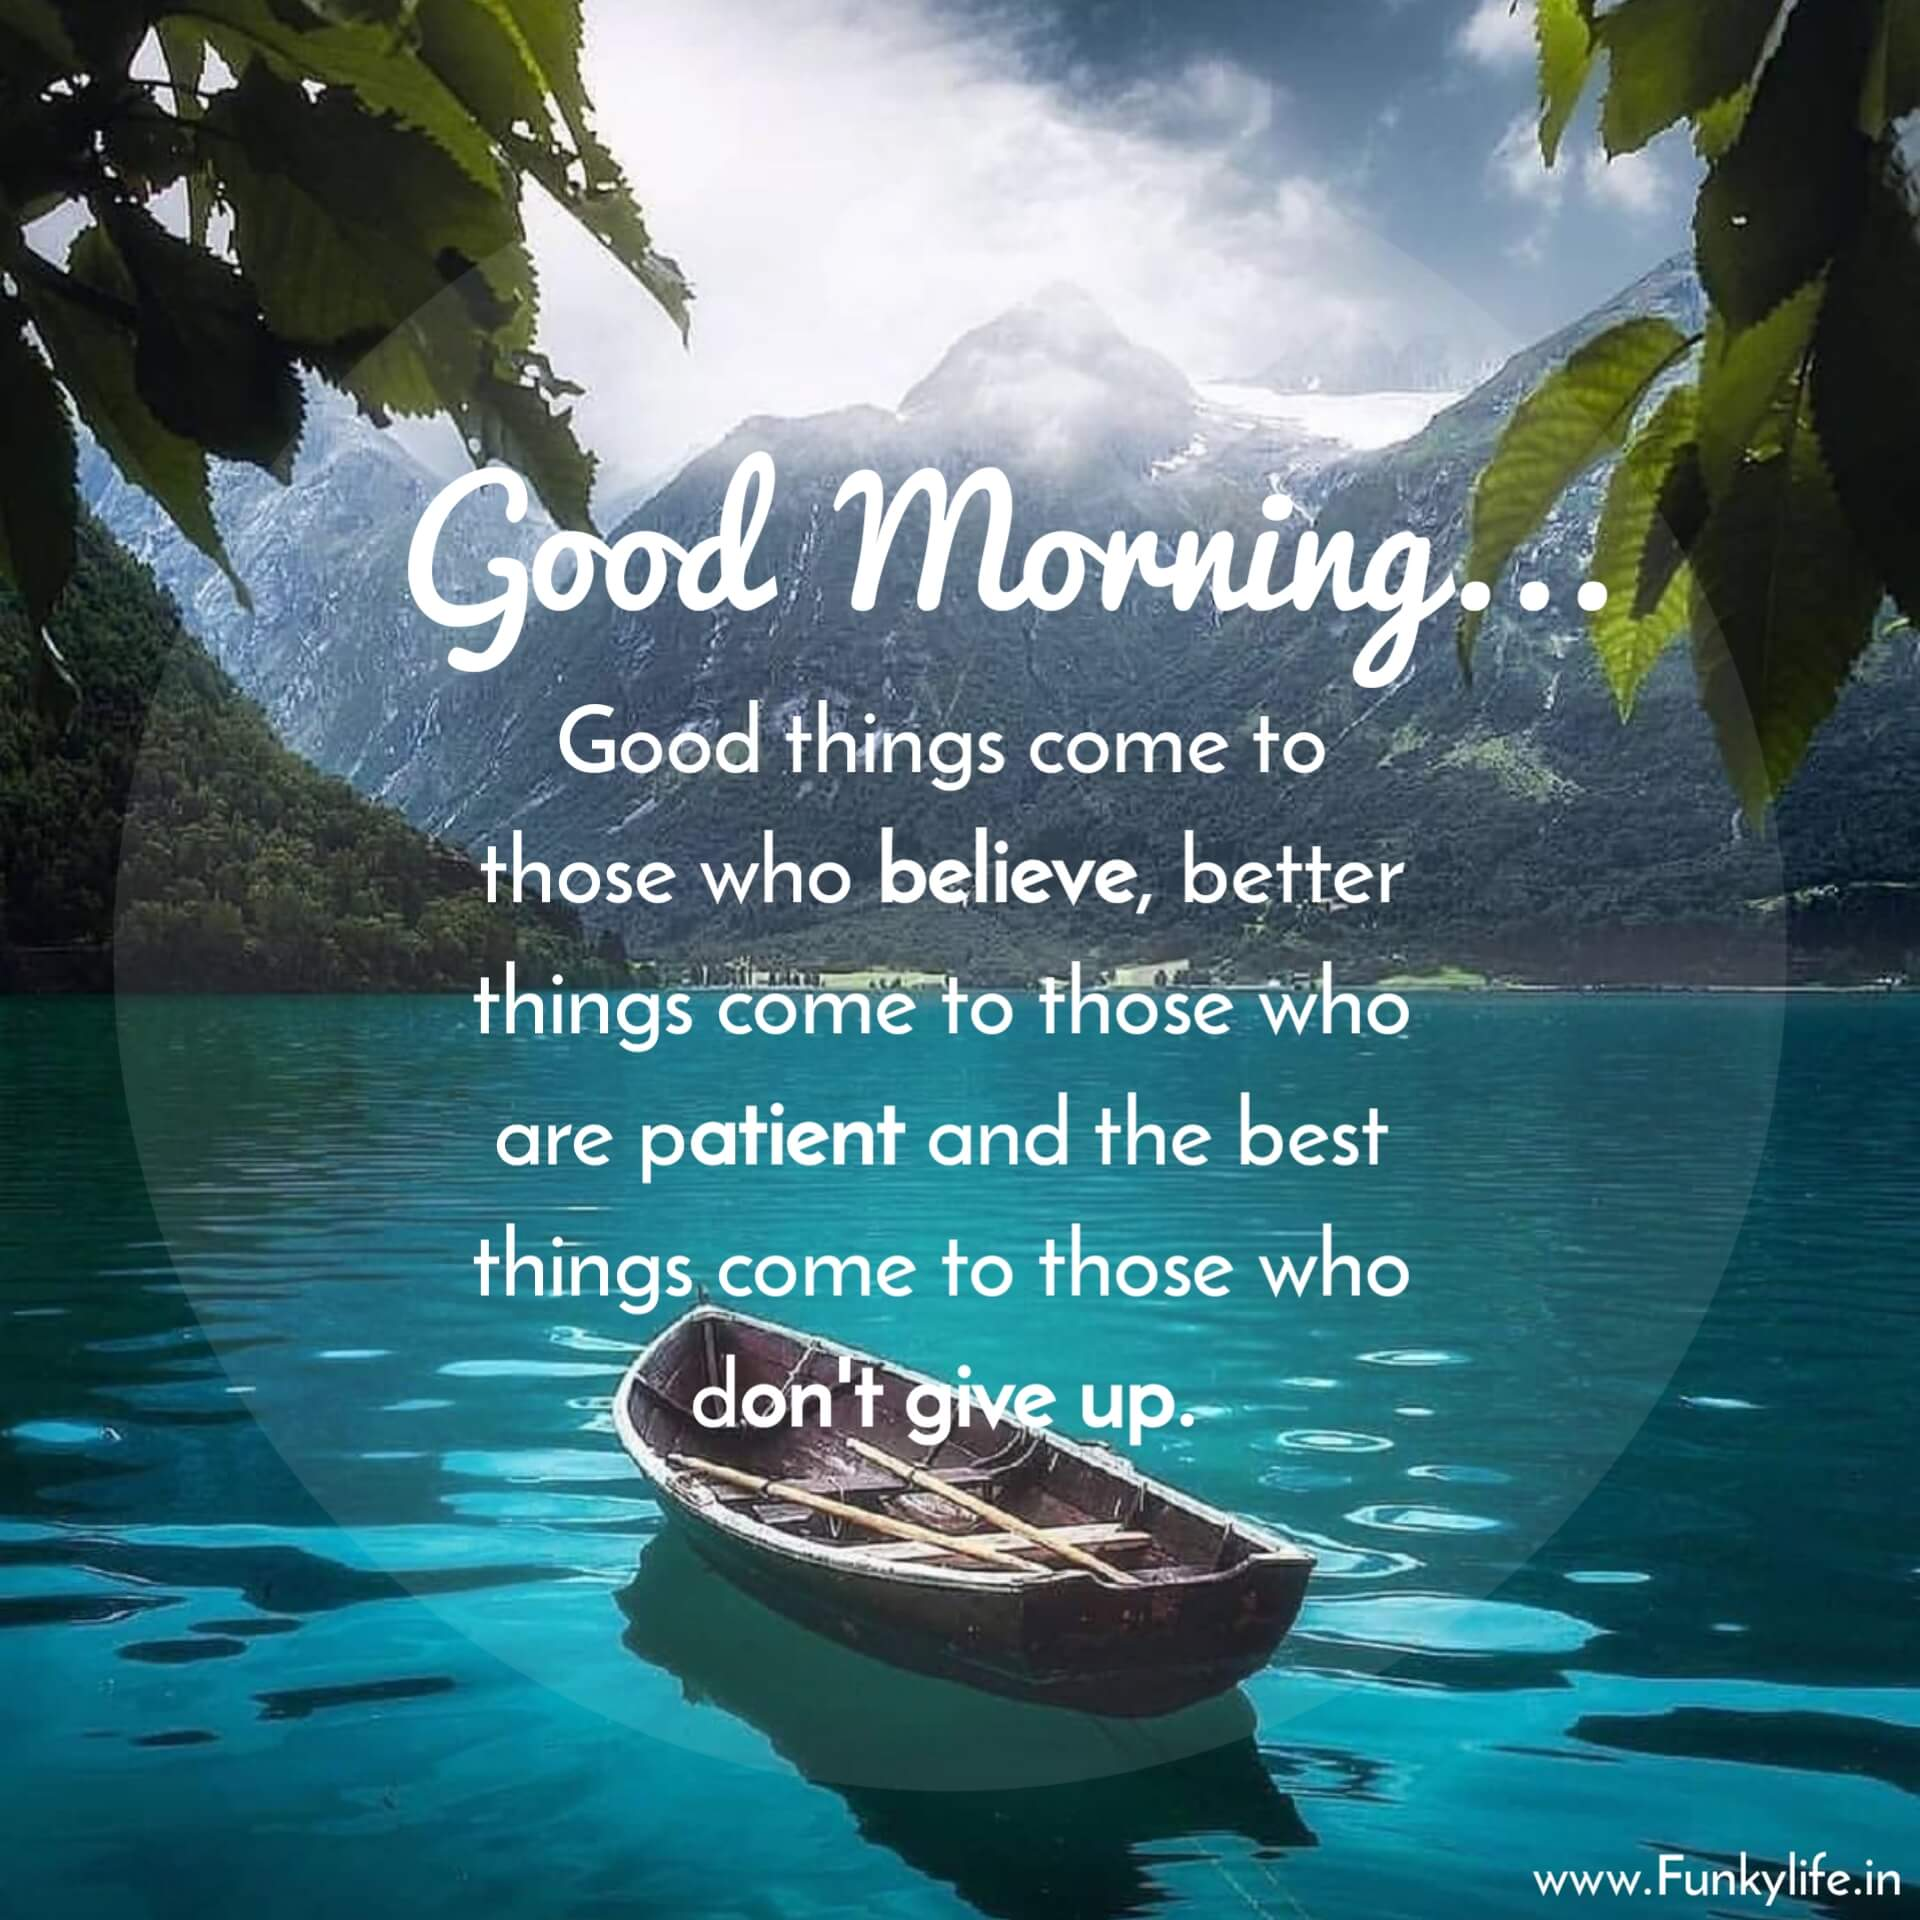 Good Morning Image with Quote For WhatsApp